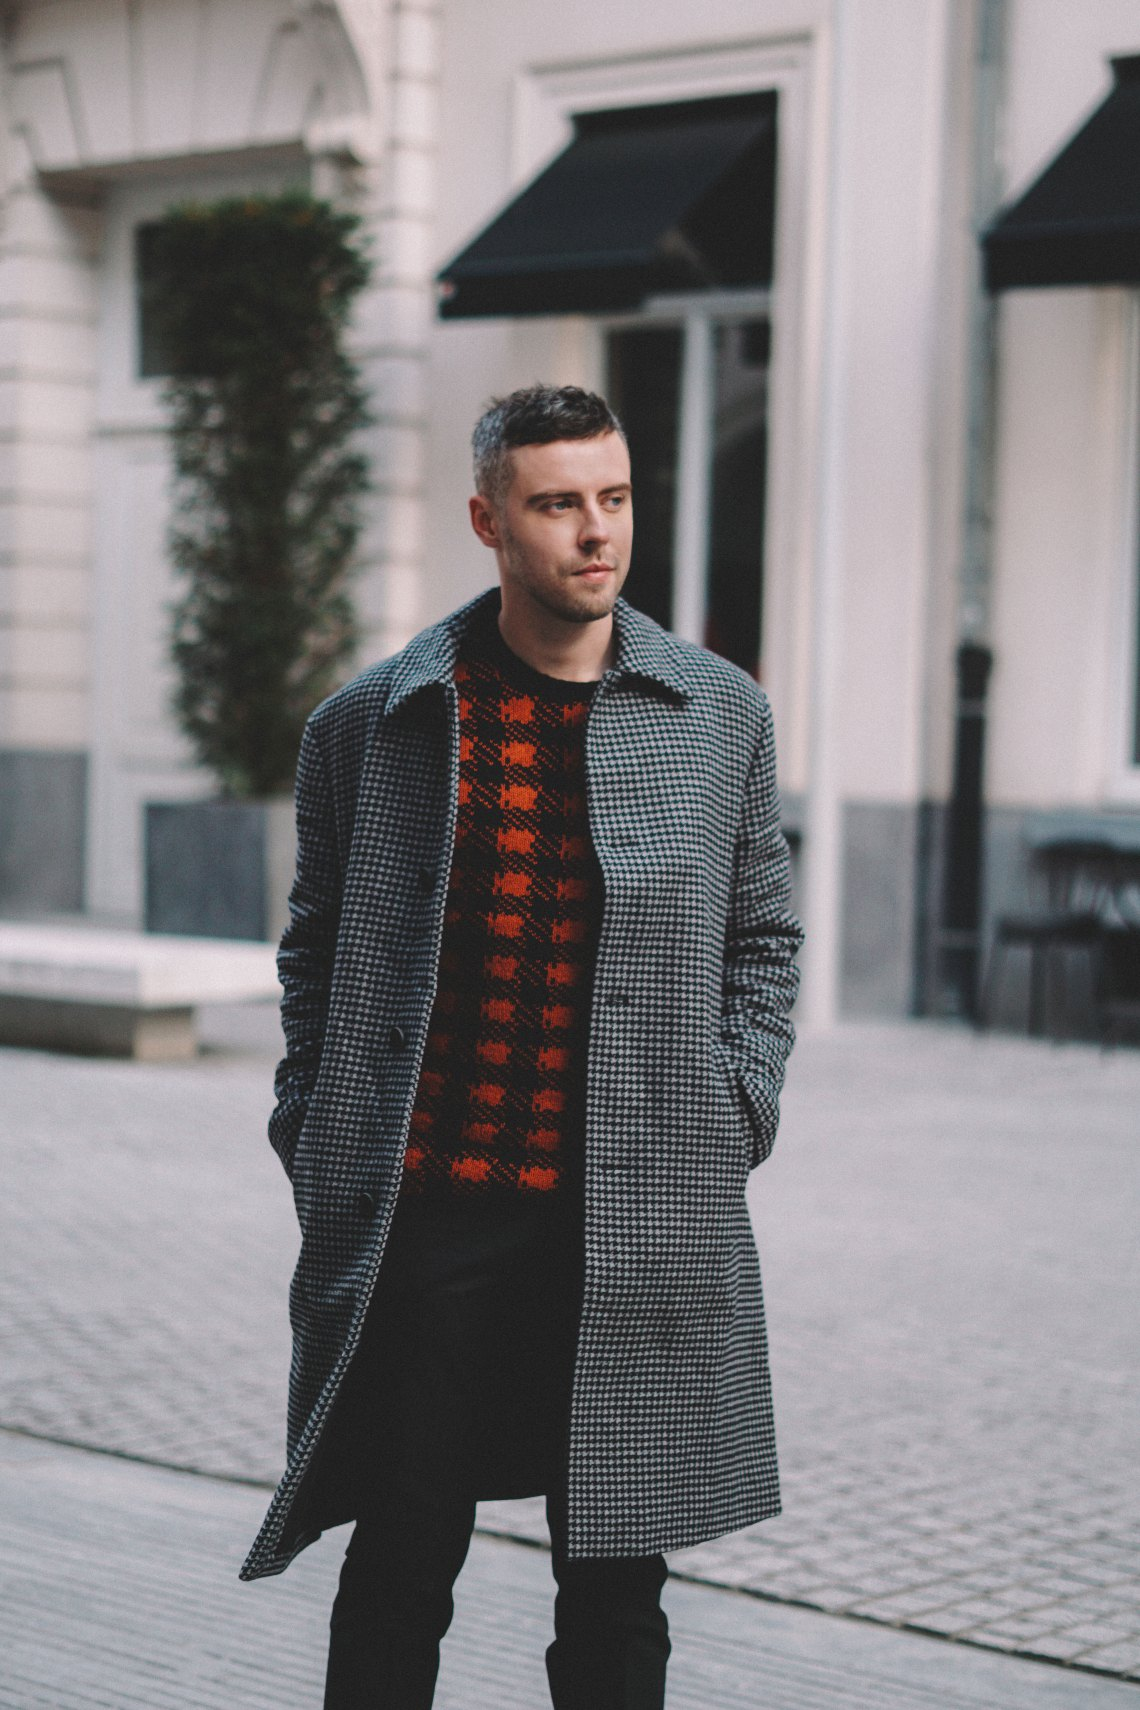 Weekend break in Brussels. Wearing Double Dogtooth Check Coat, Mohair Plaid Crew Neck Jumper and Micro Dogtooth Stretch Trousers from French Connection. Blog by Skirmantas Petraitis.